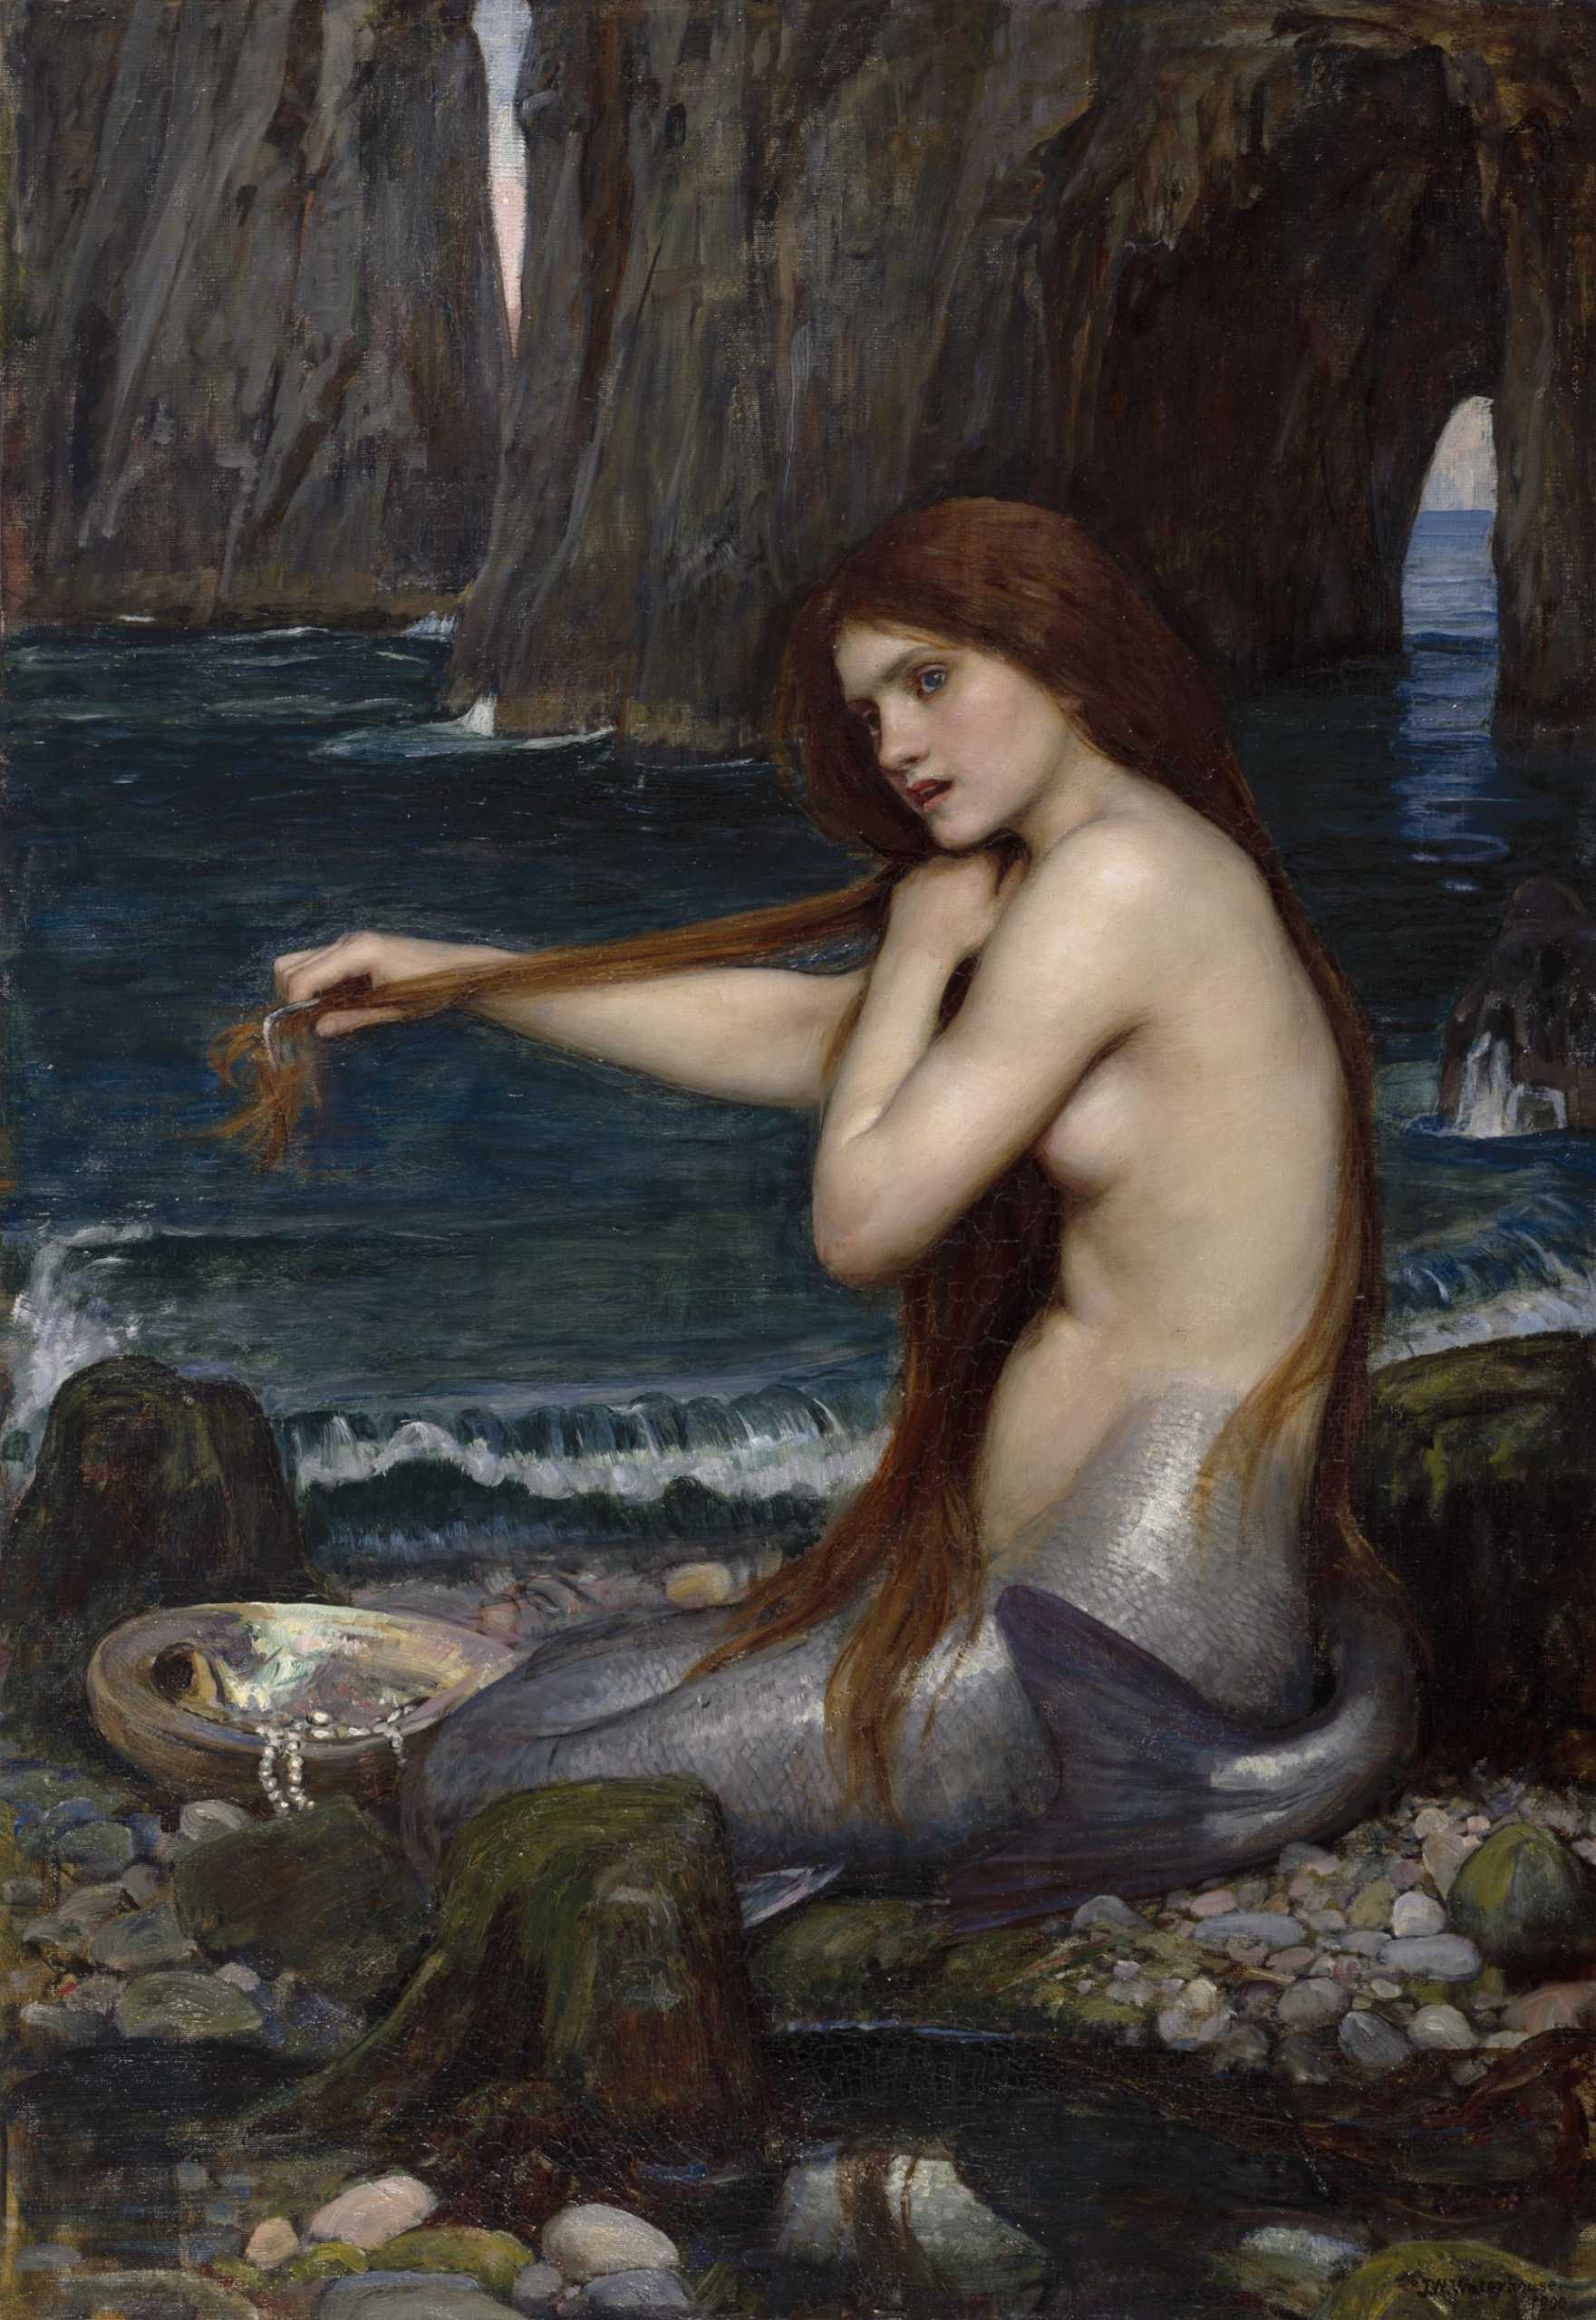 painting of a mermaid by John William Waterhouse